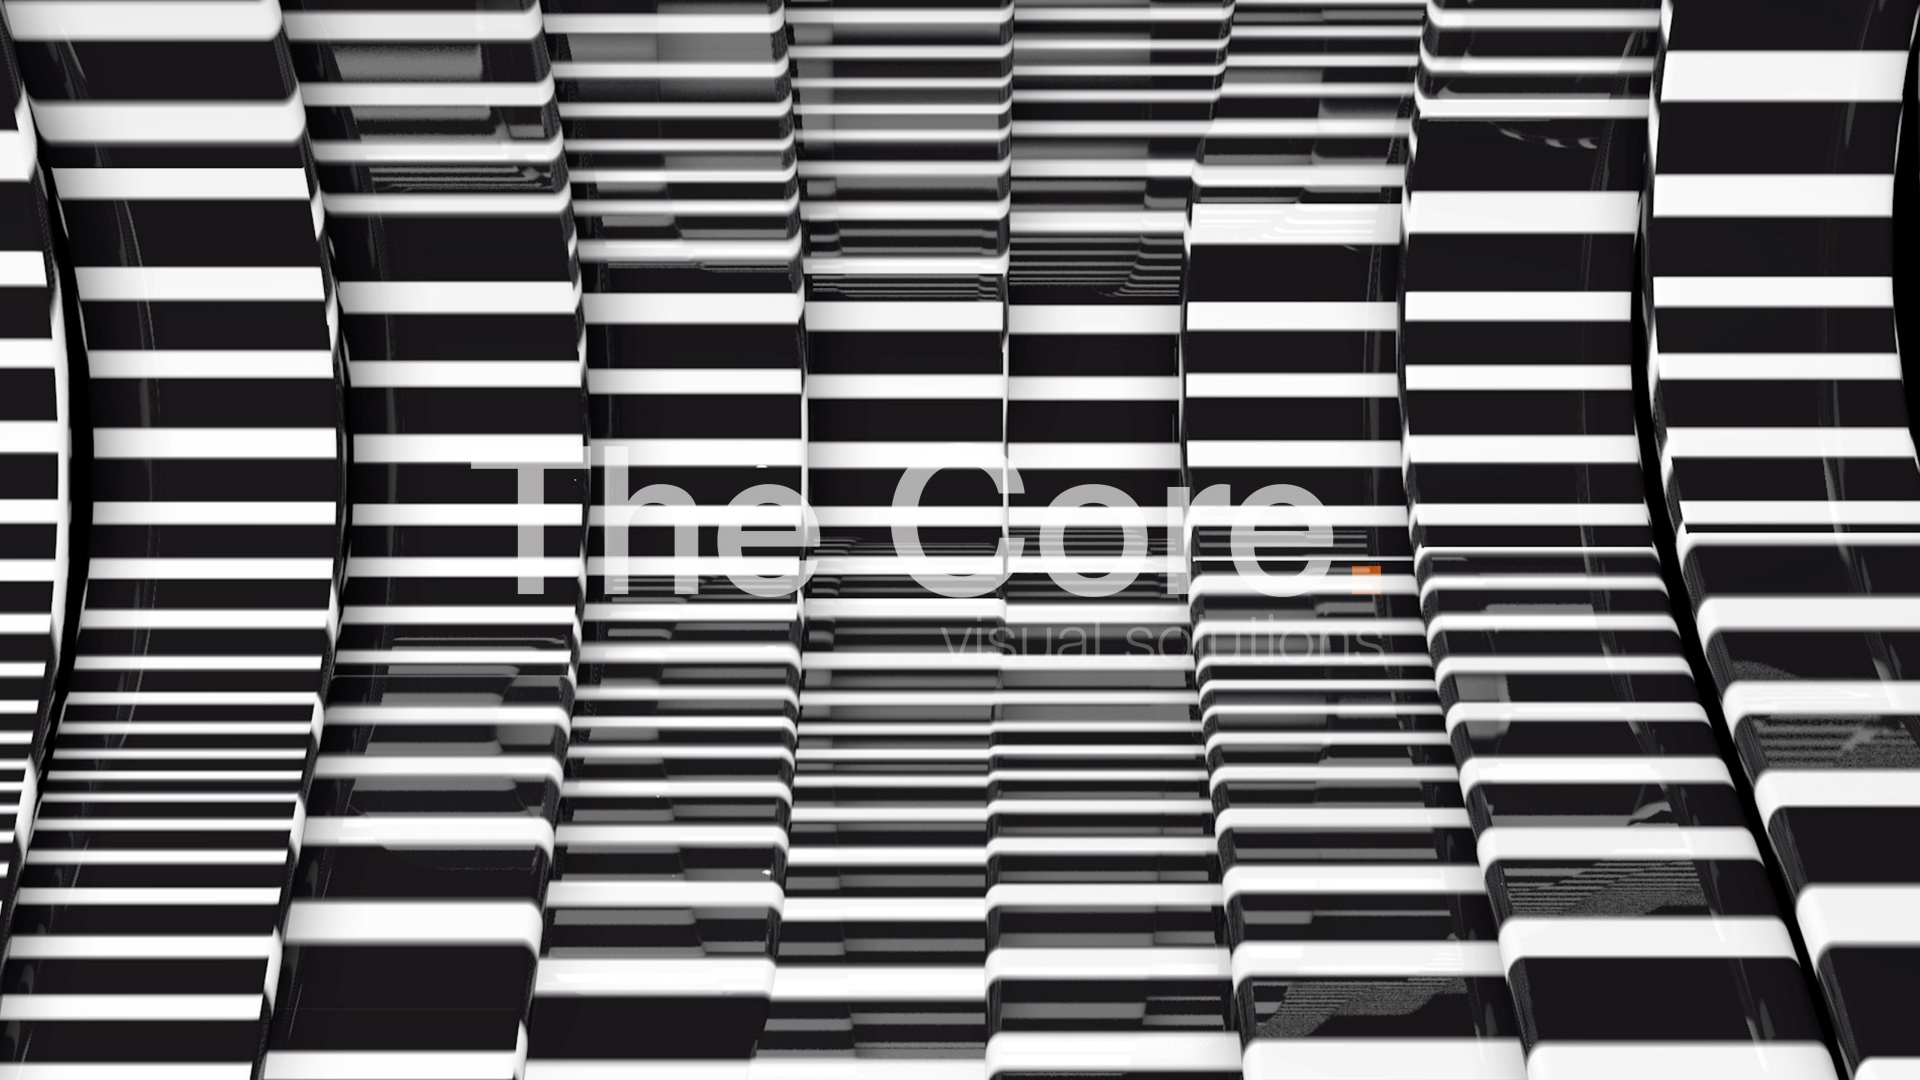 00213-SLICE-OPART-9-STILL-by-The-Core